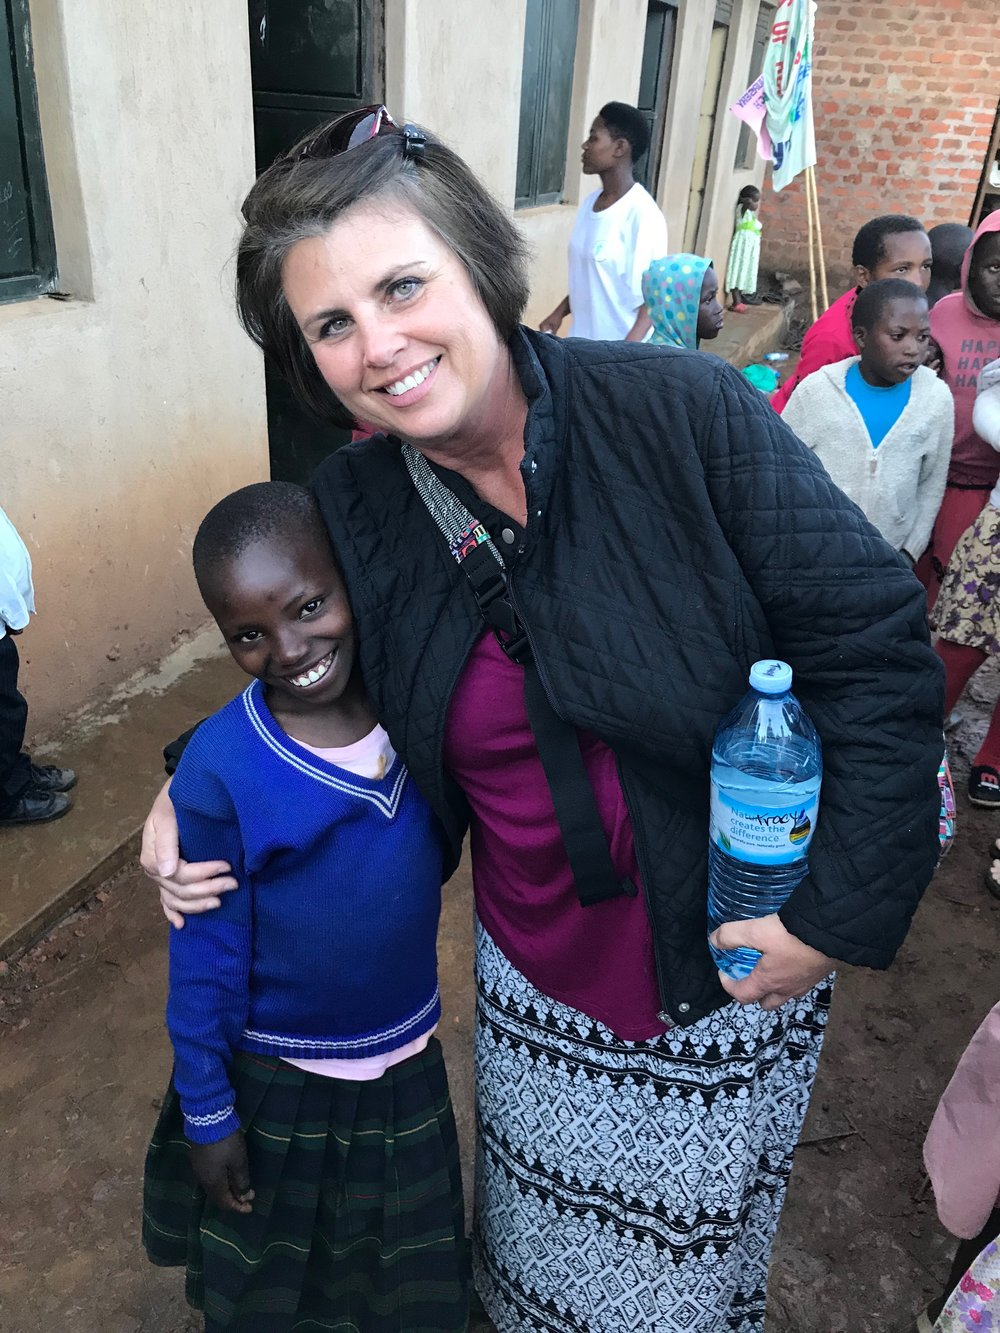 Mercy meeting her sponsor, Tracy, for the first time. Love at first sight!